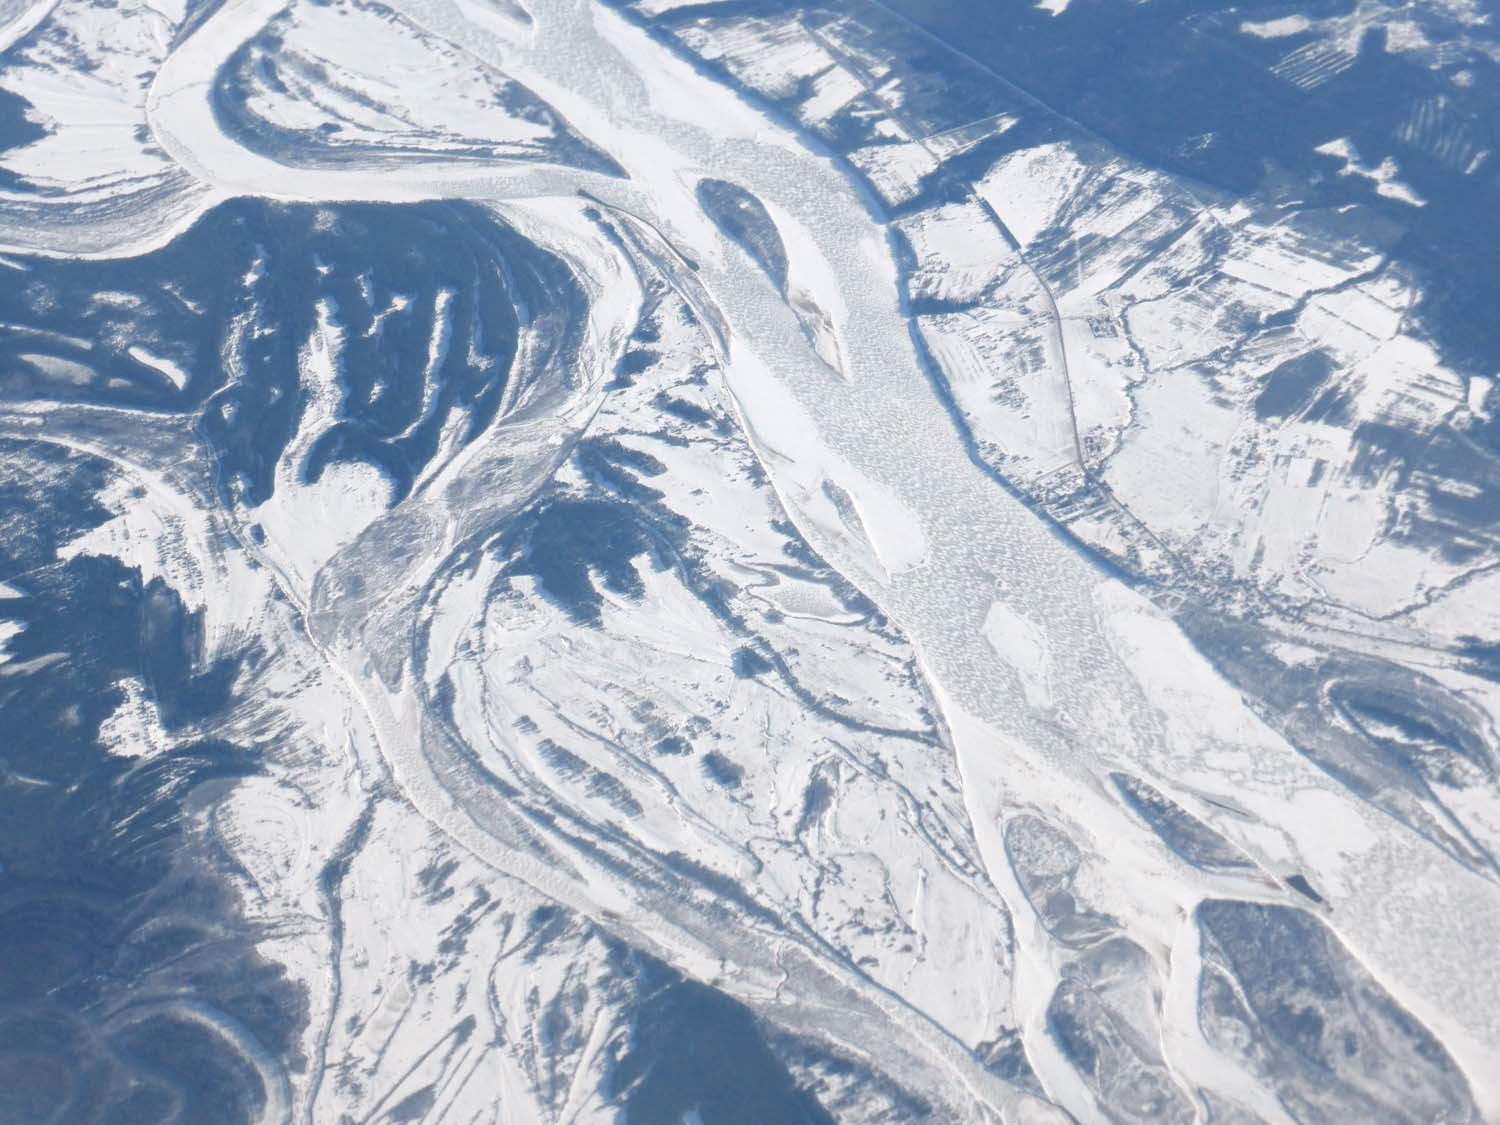 Frozen braided river